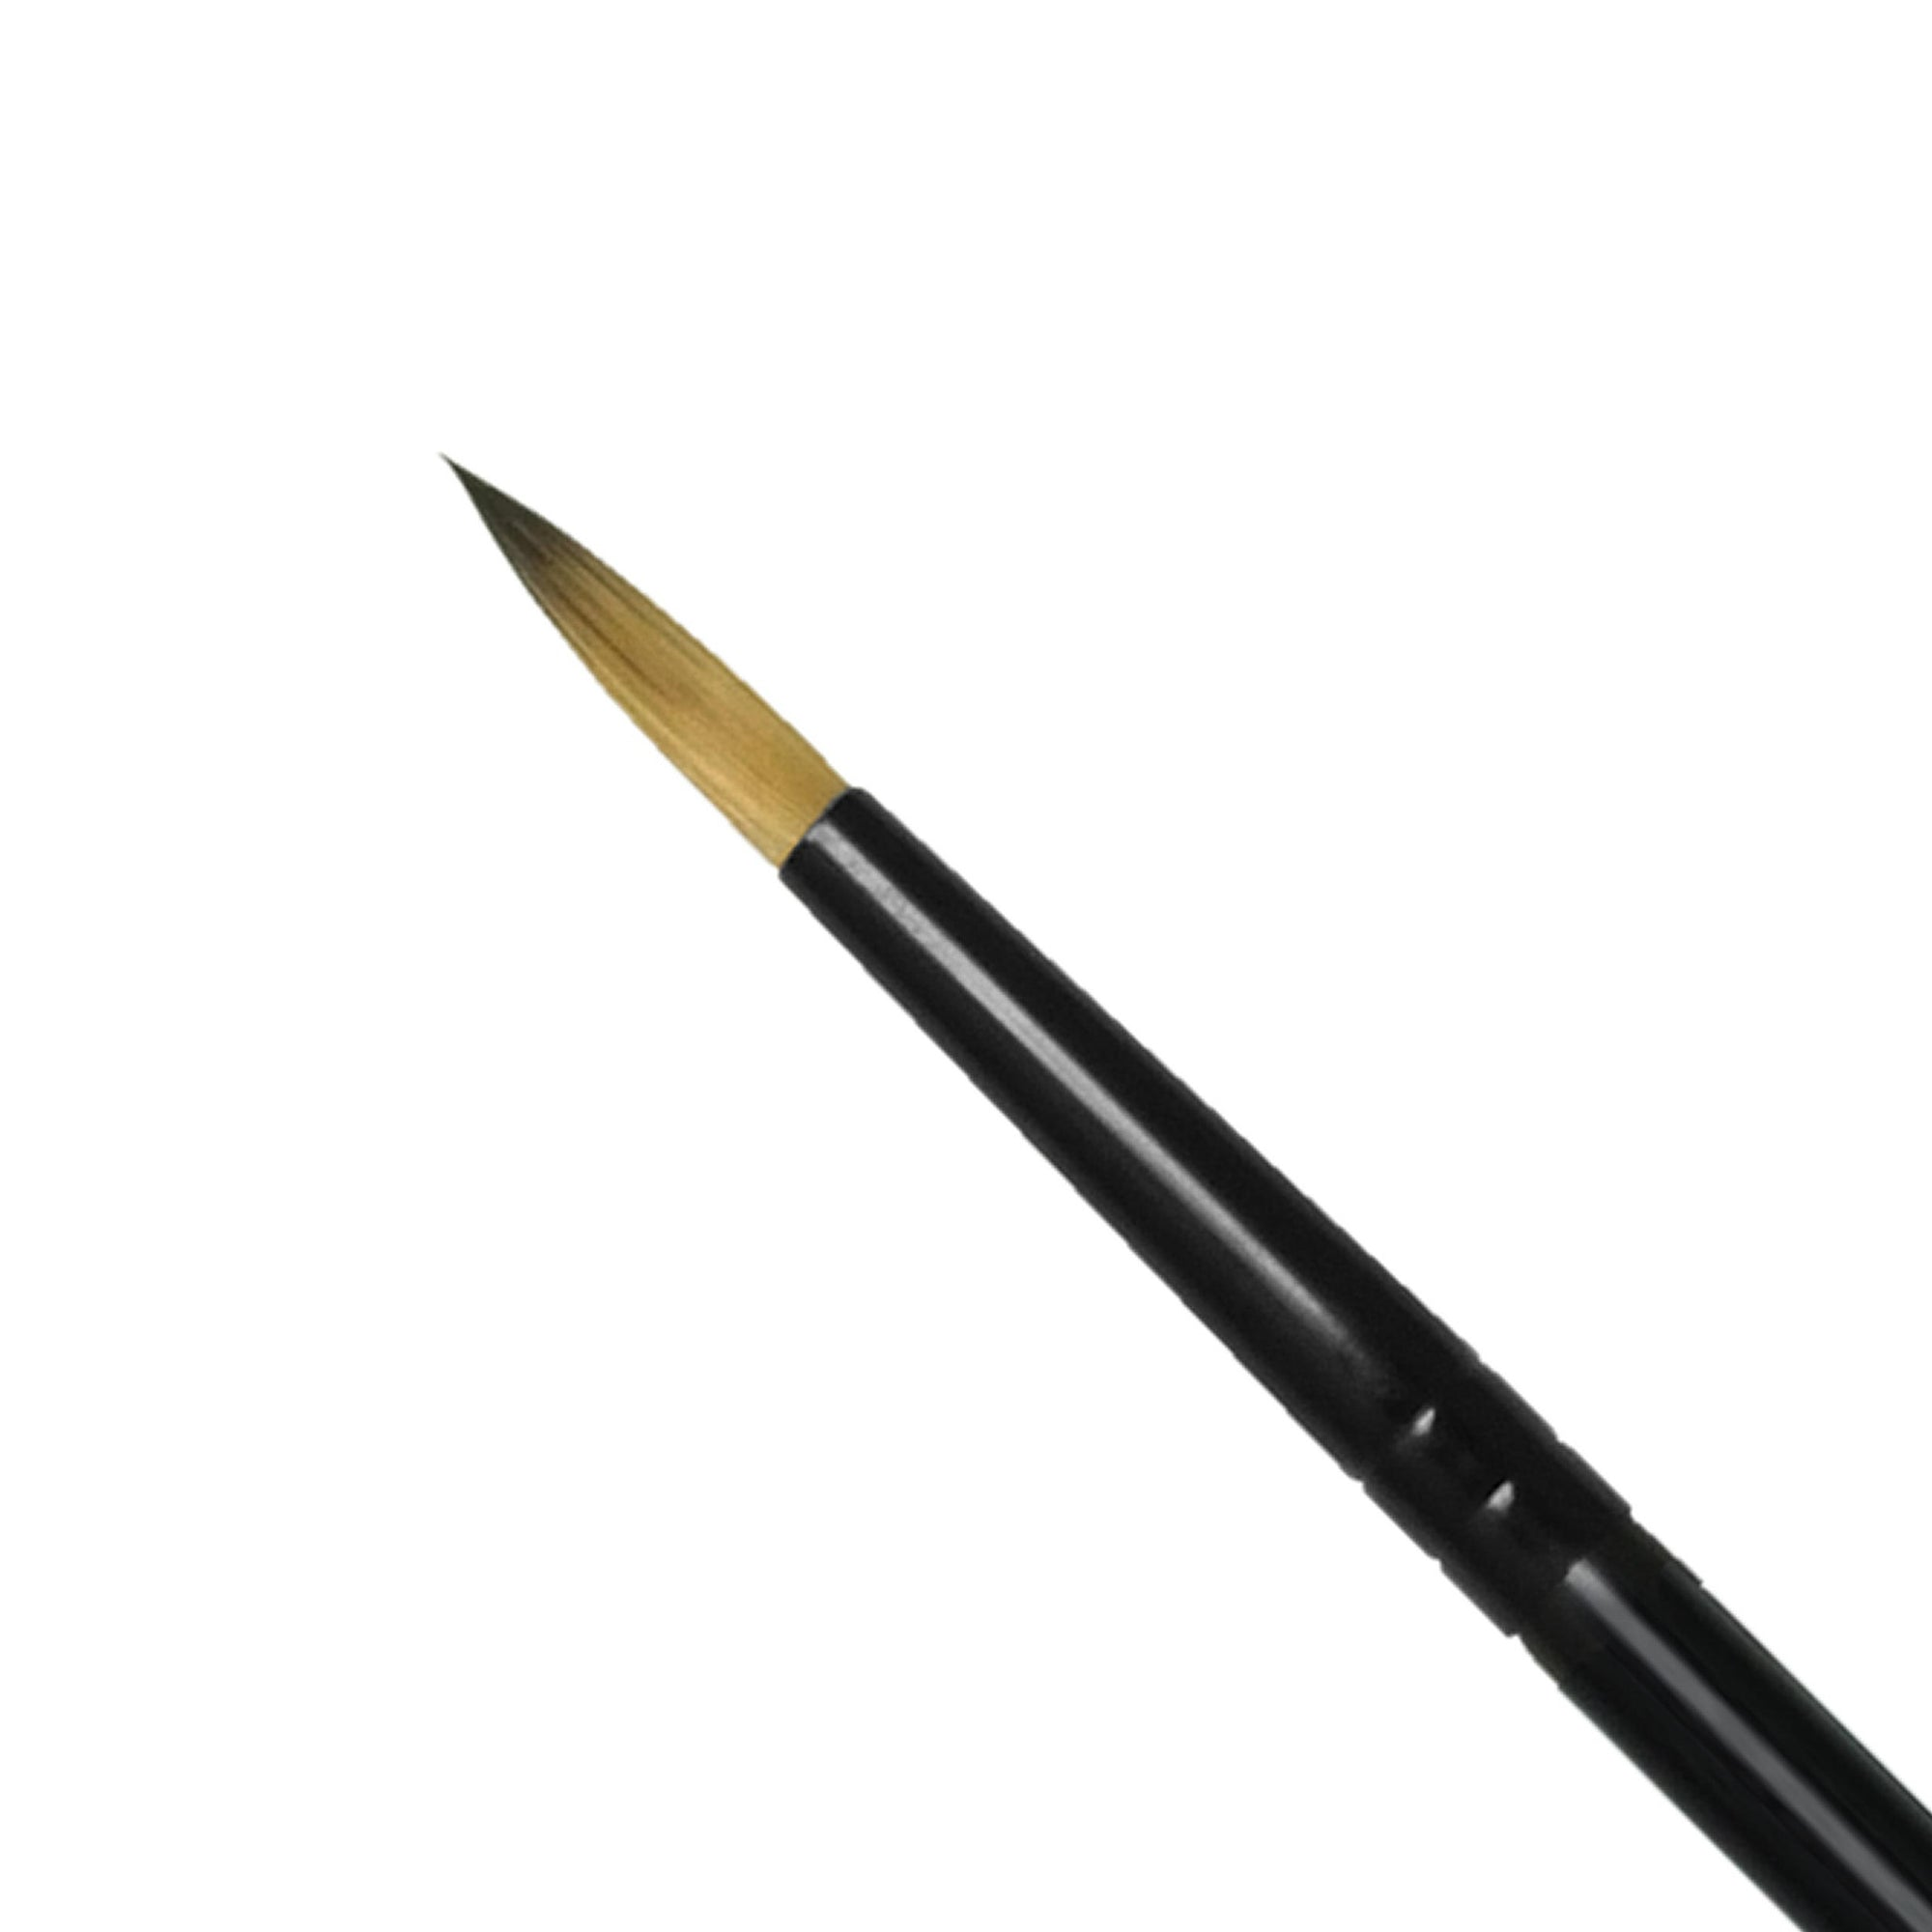 Royal & Langnickel Majestic Round S6 Brush - Red Carpet FX - Professional Makeup